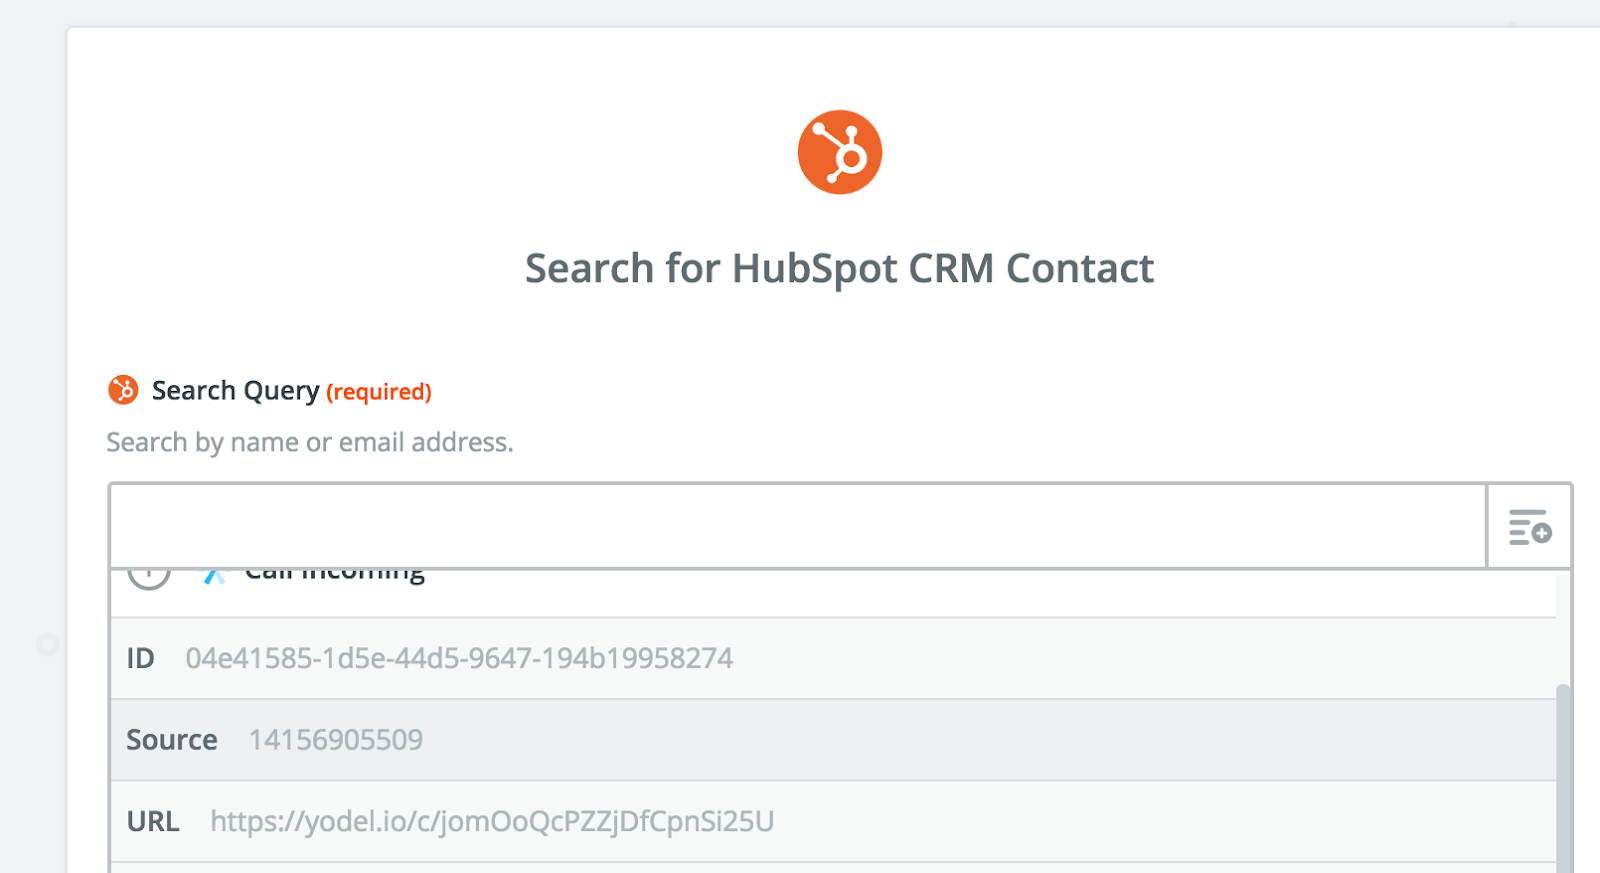 Search for HubSpot CRM Contact